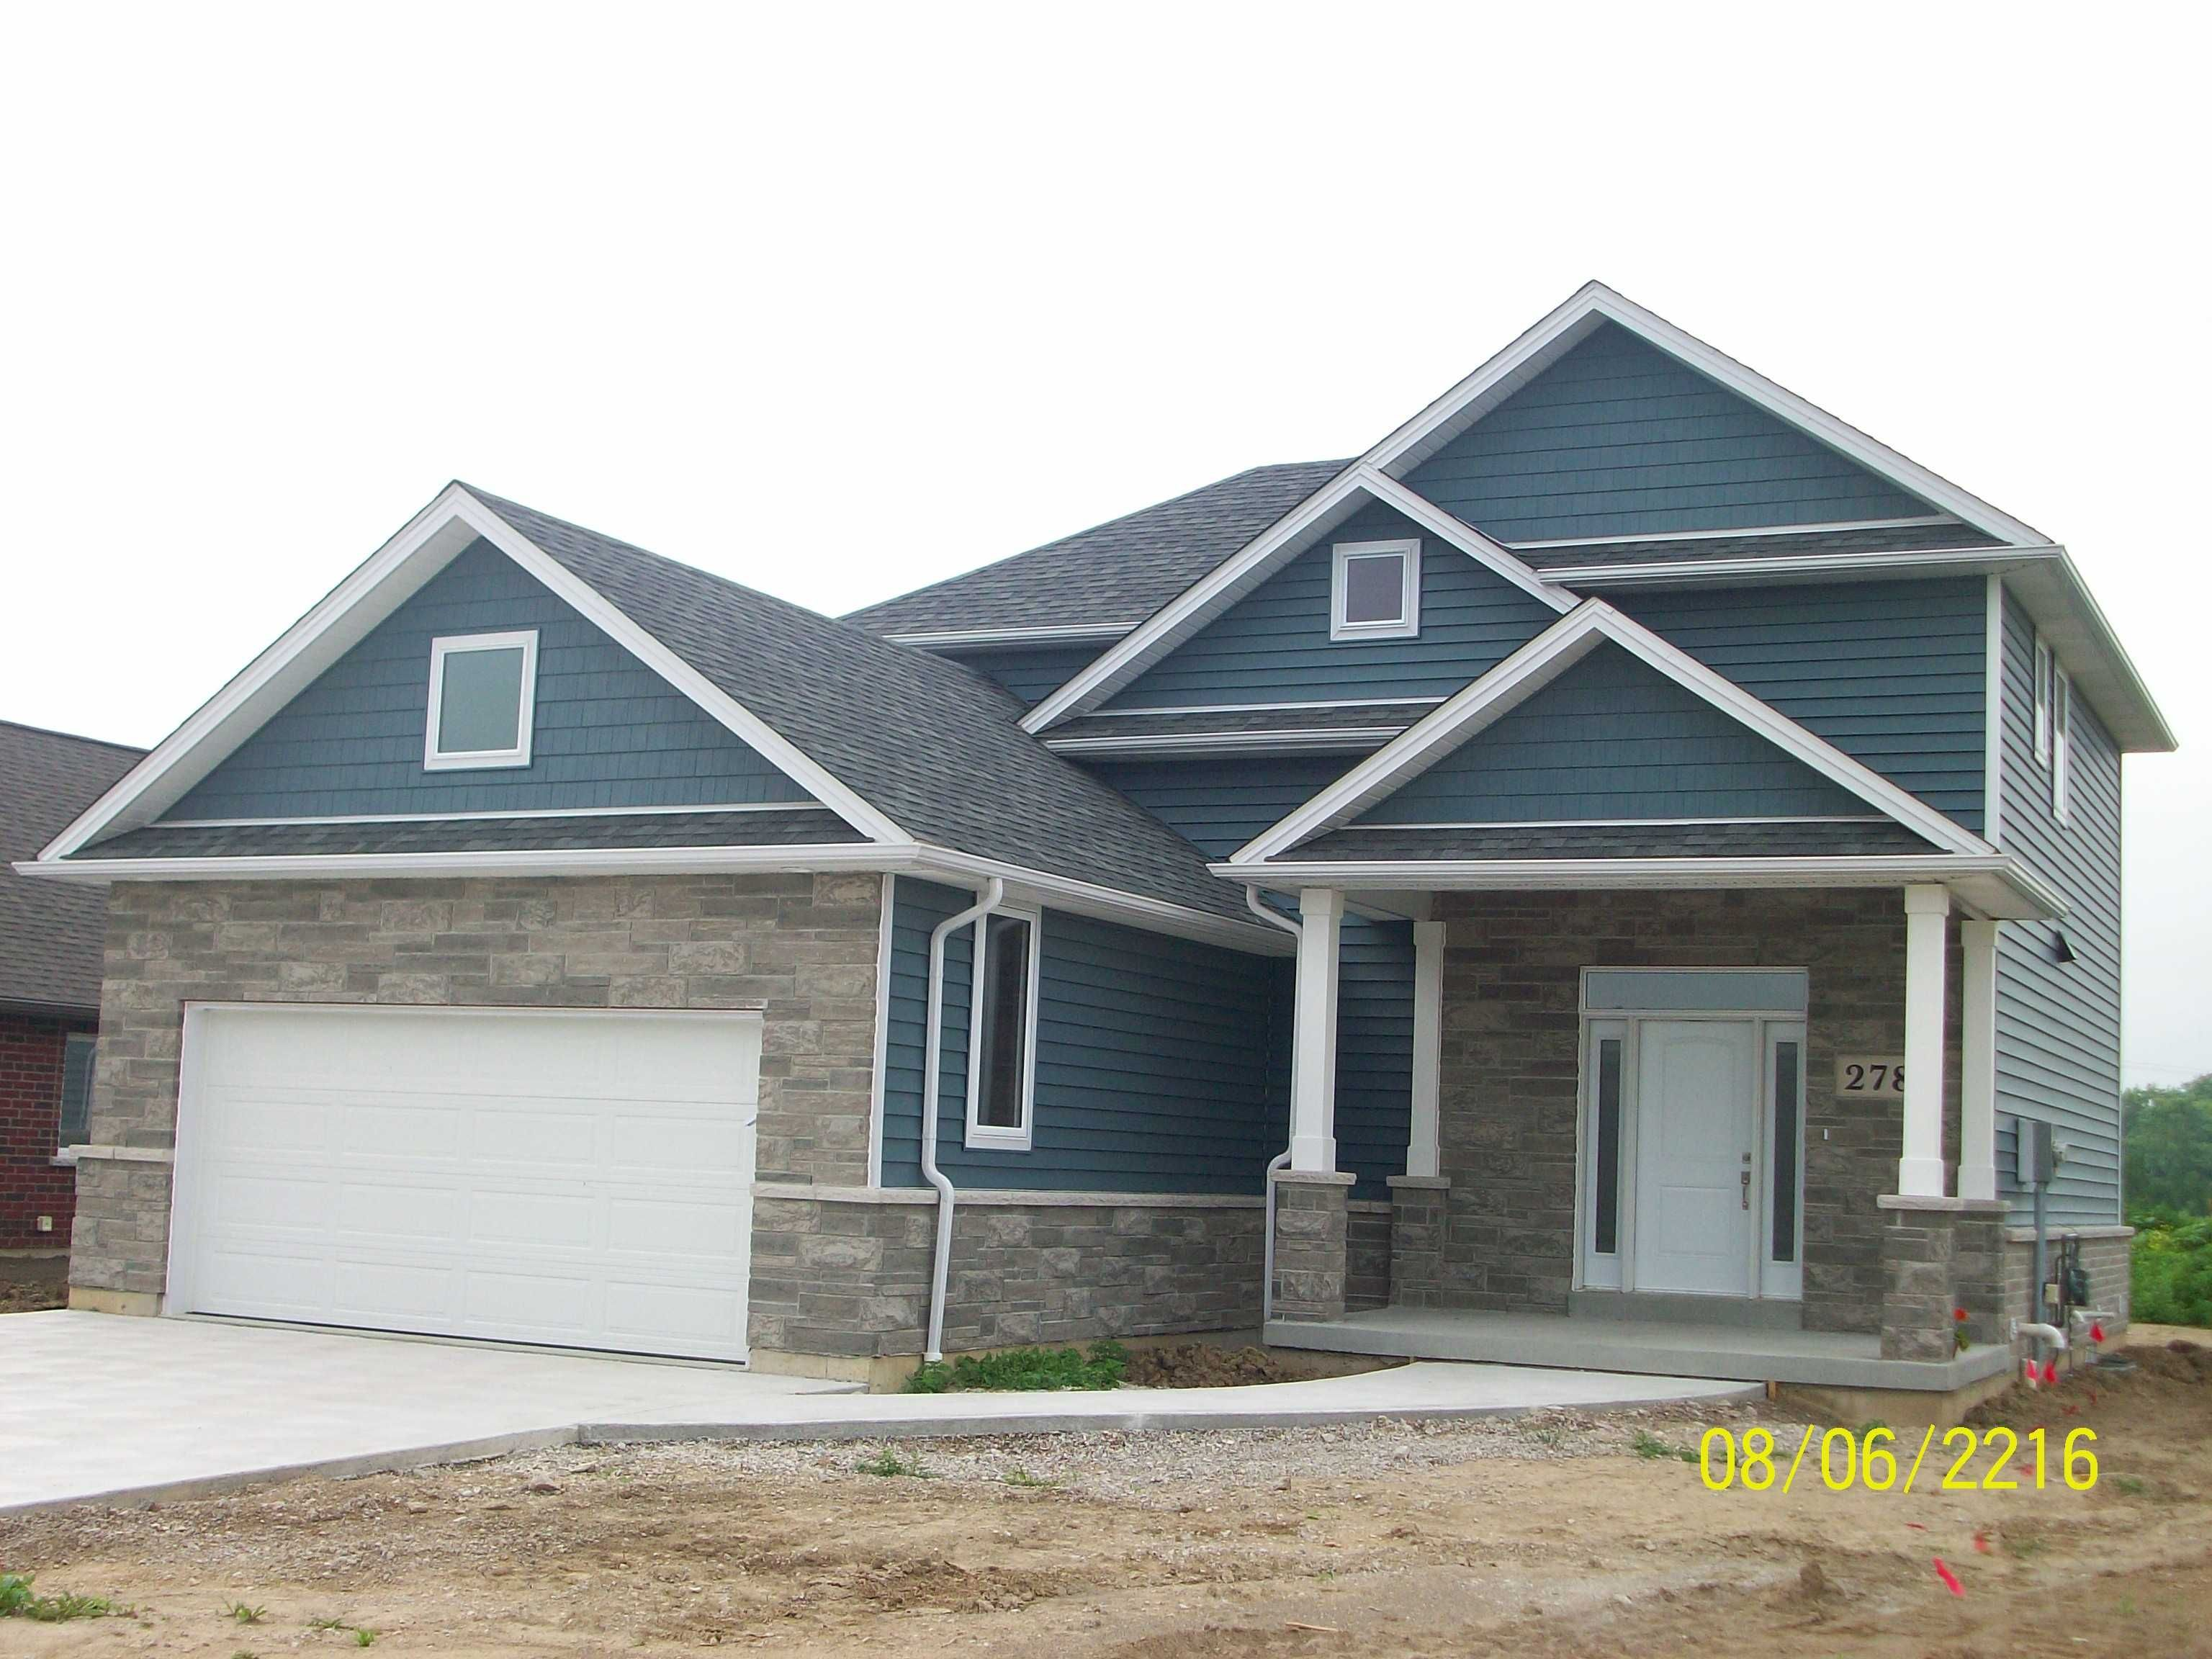 Kaycan Vinyl Siding Cabot Blue Siding With Grey Beige Stone And White Trims Beige Cream Neutral Vinyl Exterior Siding Vinyl Siding Lake Houses Exterior